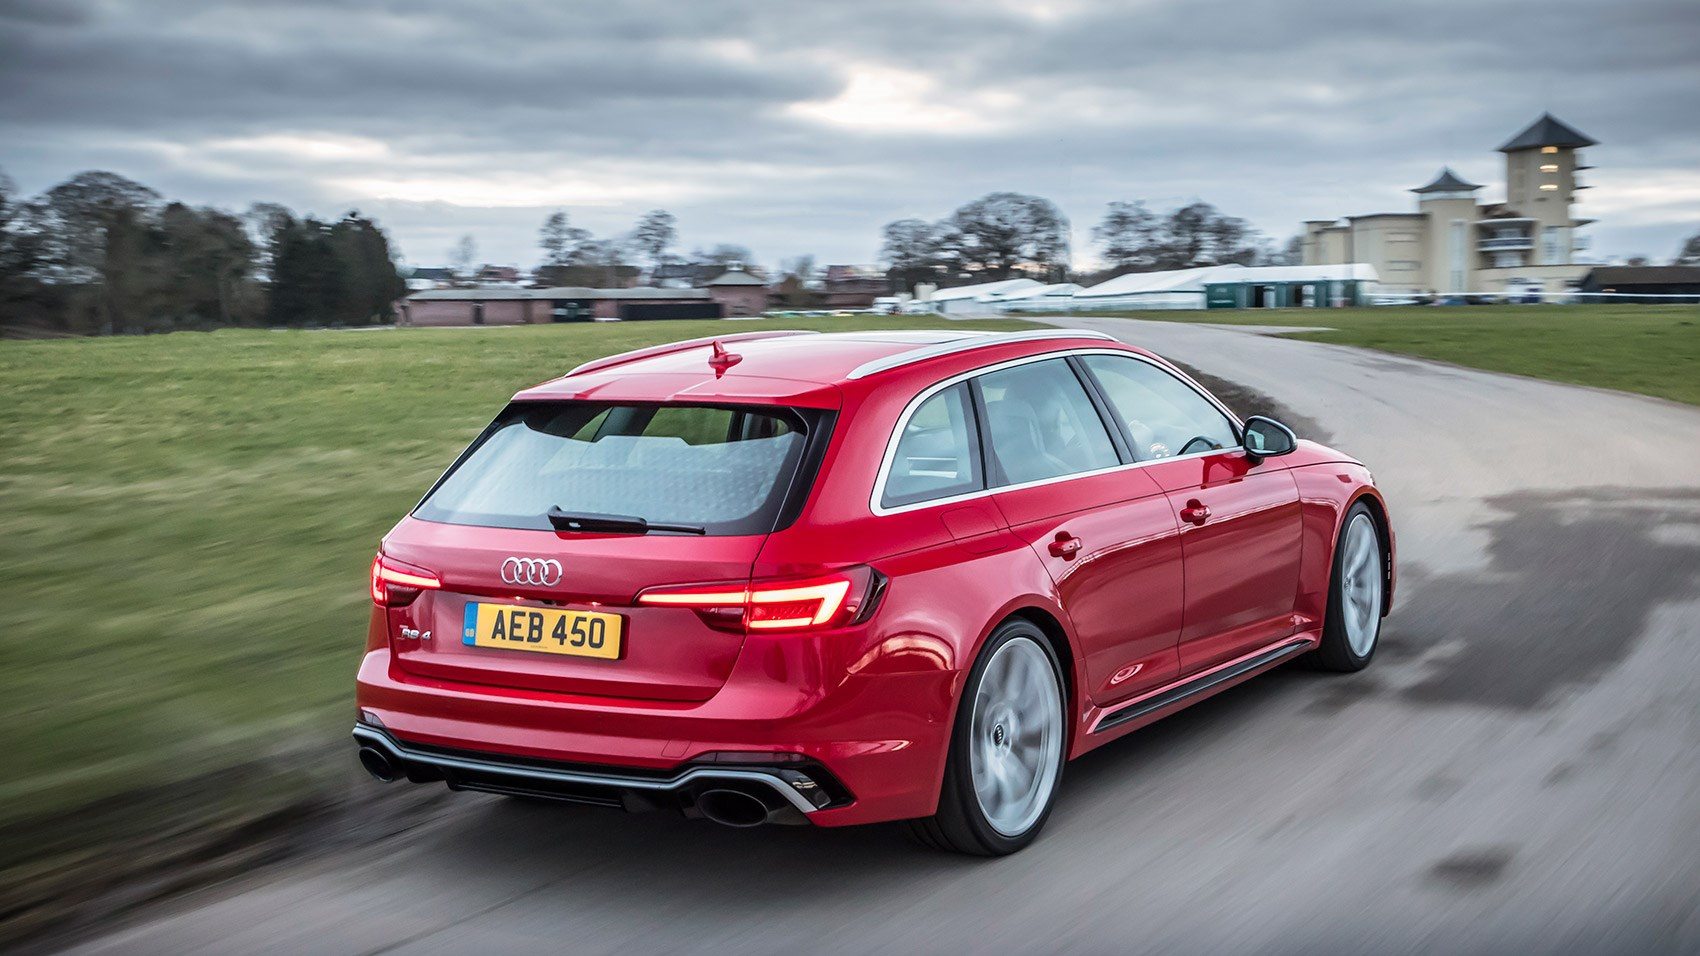 New Audi RS4 Avant (2018) review: RS5 thrills, with added